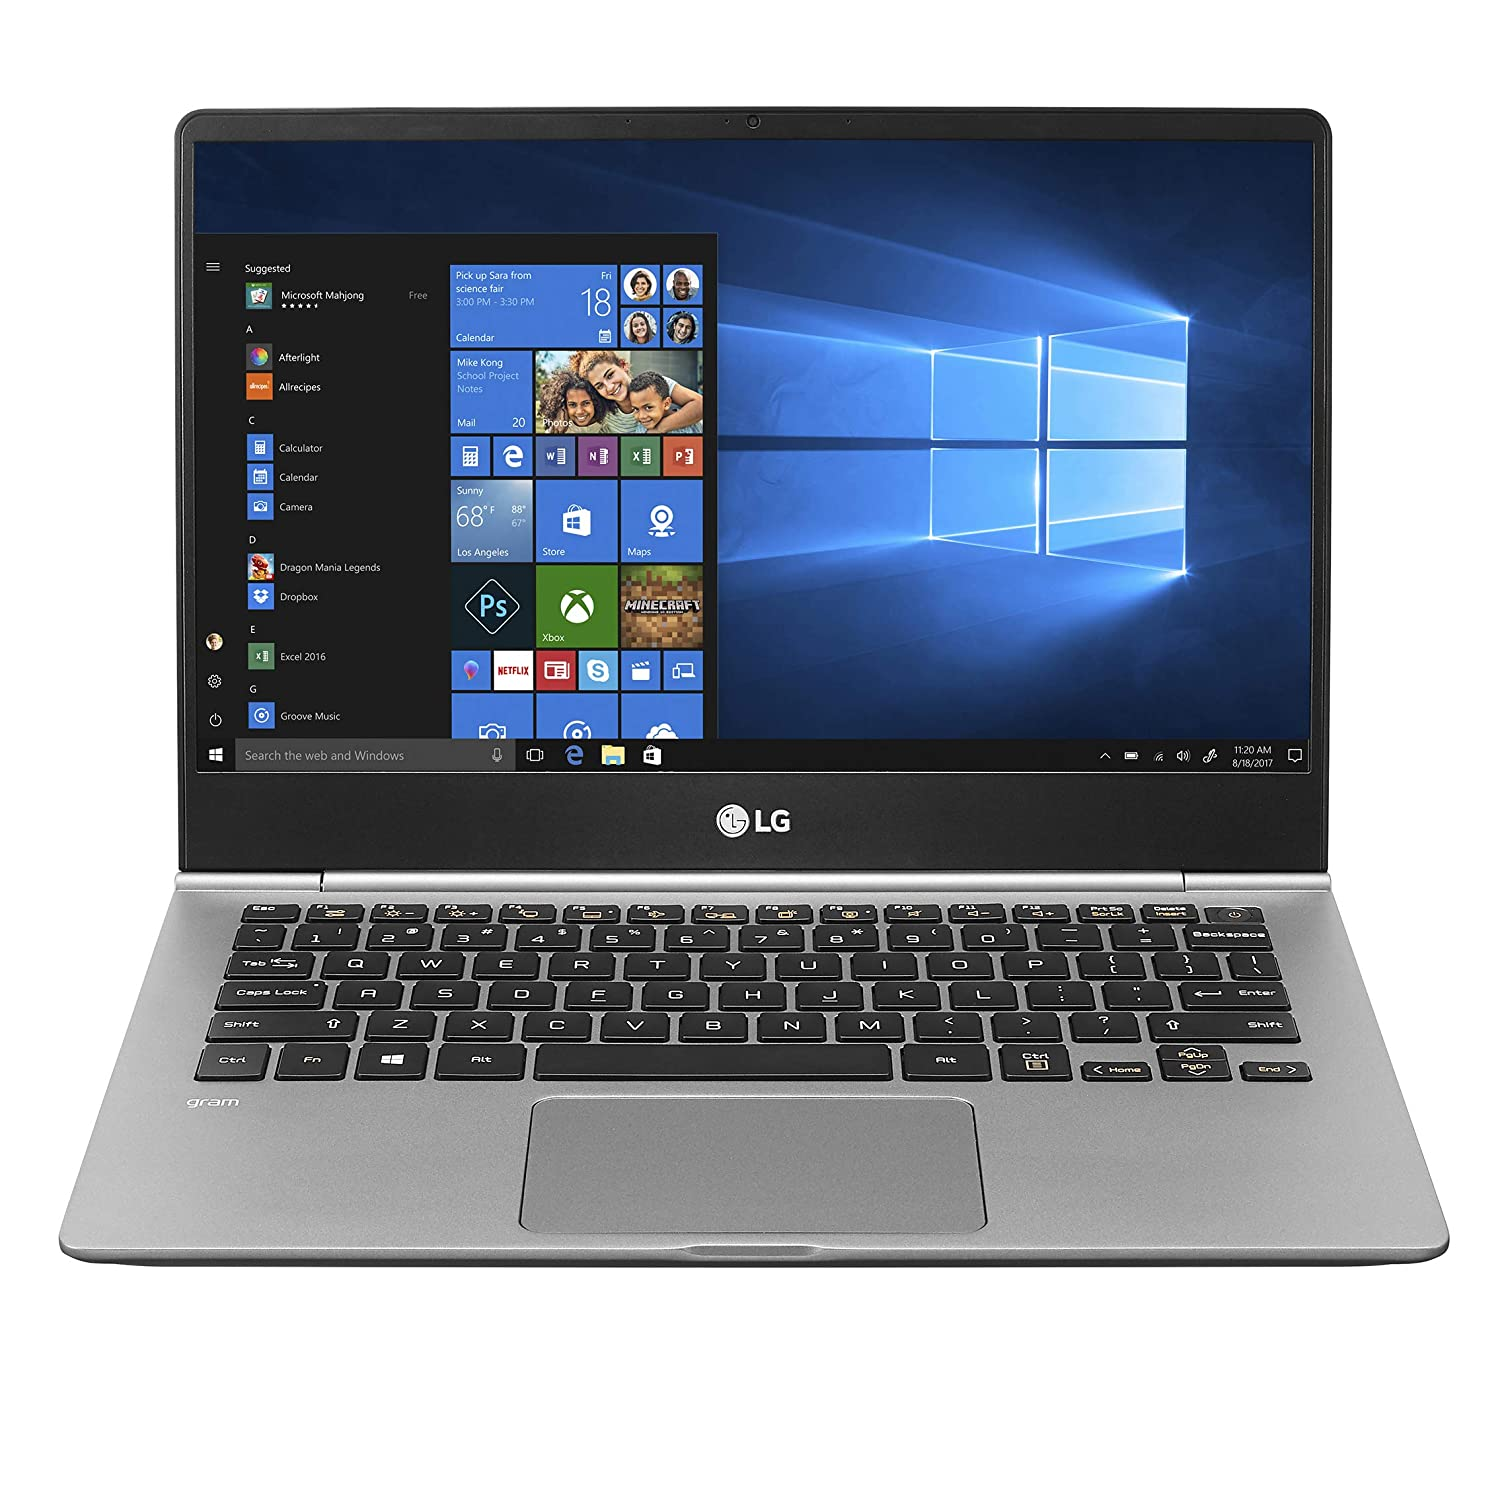 "LG Gram Laptop - 13.3"" Full HD Touchscreen, Intel 8th Gen Core i5, 8GB RAM, 256GB SSD, 20.5Hour Battery, 13Z990-A.AAS5U1 (2019)"